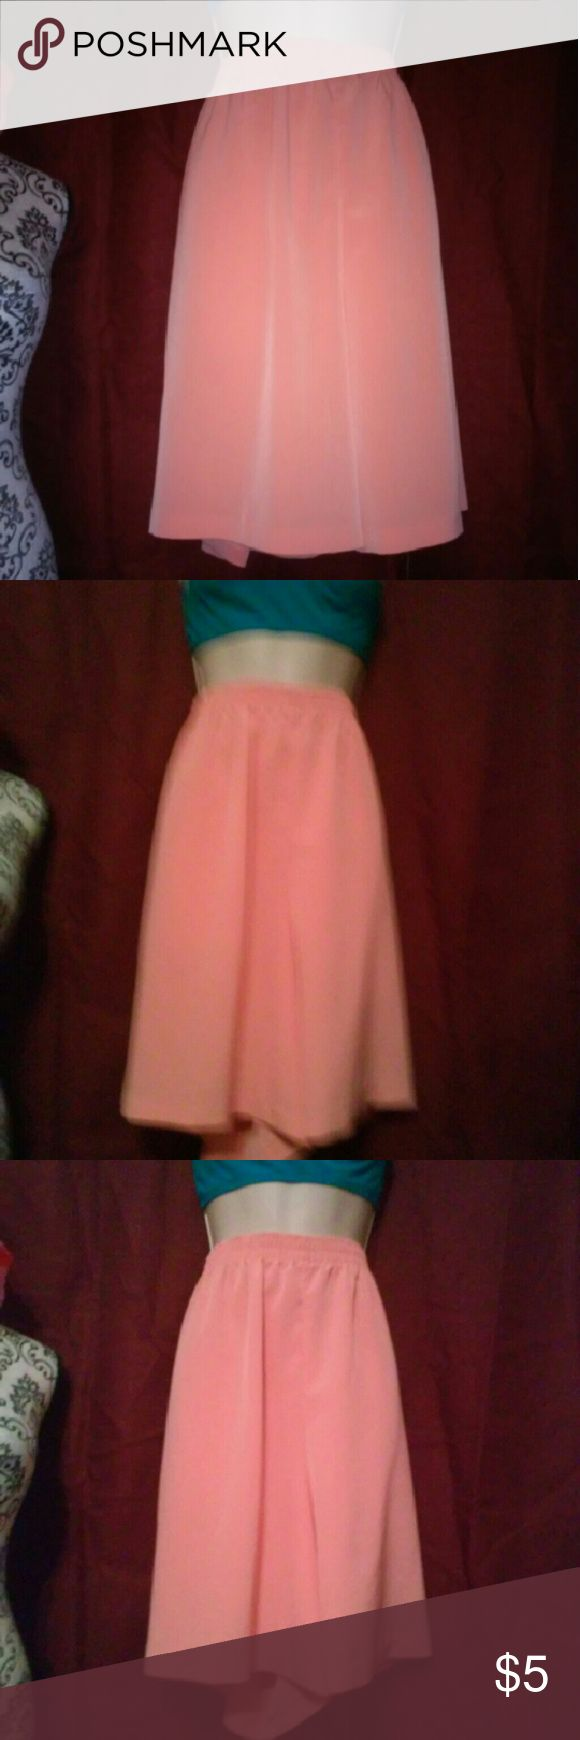 Peach shorts size large Large peach shorts by maggy smith in excellent condition maggy sweet Shorts